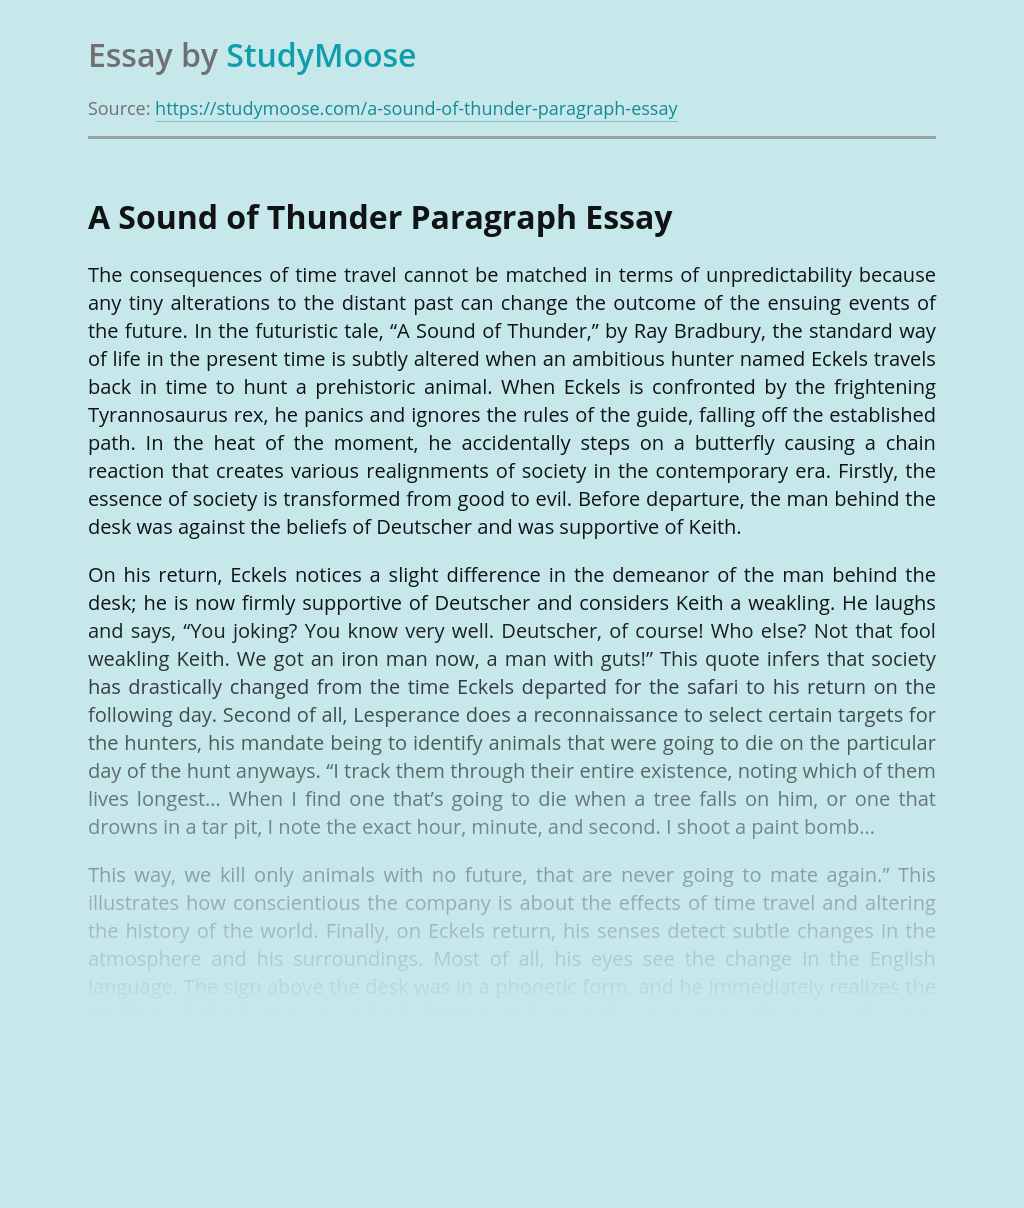 A Sound of Thunder Paragraph